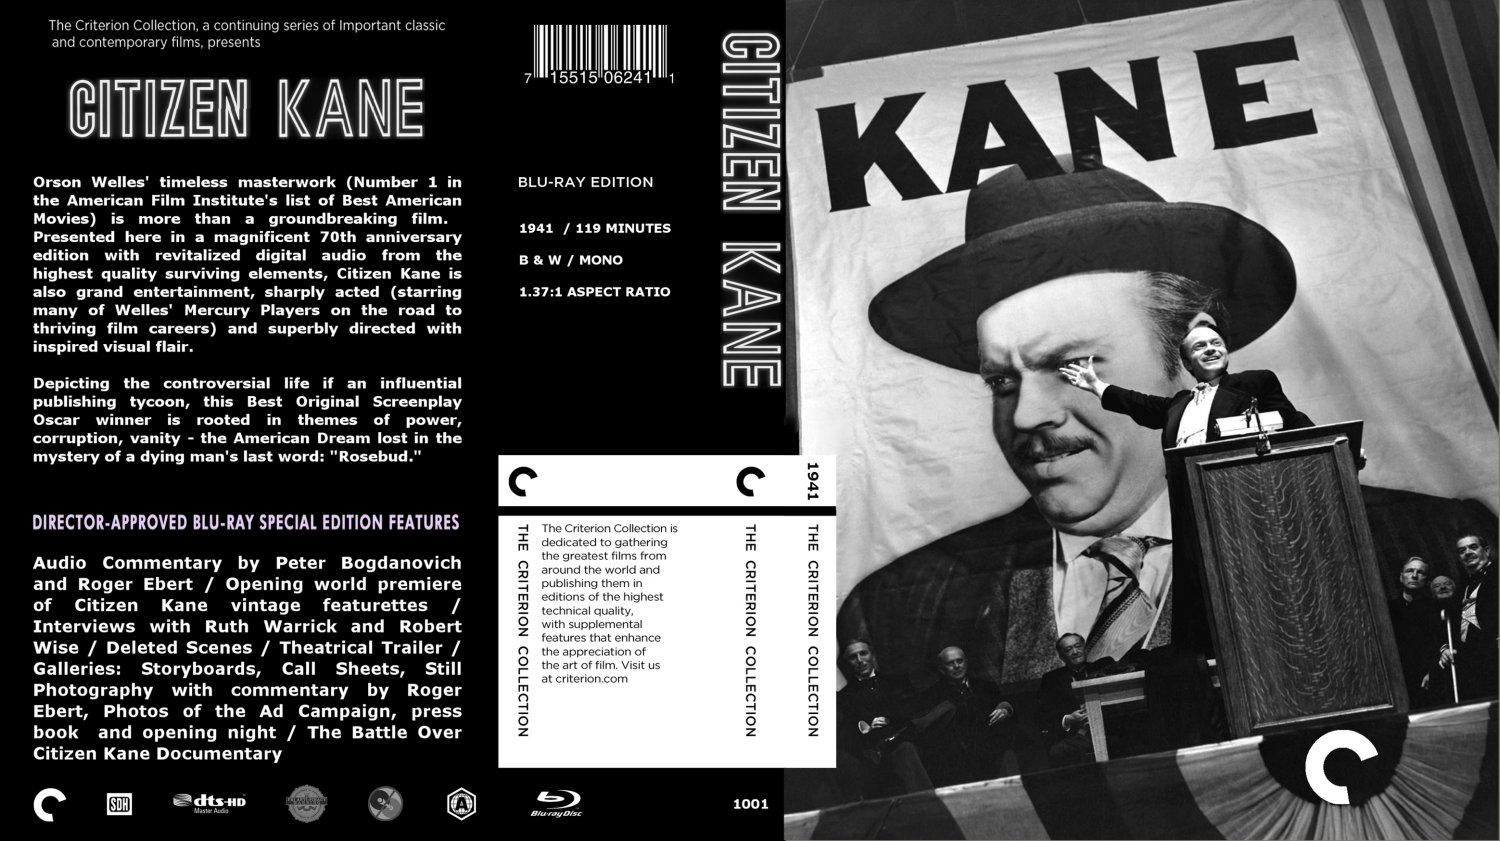 citizen kane number 1 in history Citizen kane was a film released in 1941 and it it was voted #1 in history of american film it was written by, directed by and acted by orson welles the story was set in xanada in florida and started with an introduction about that place.